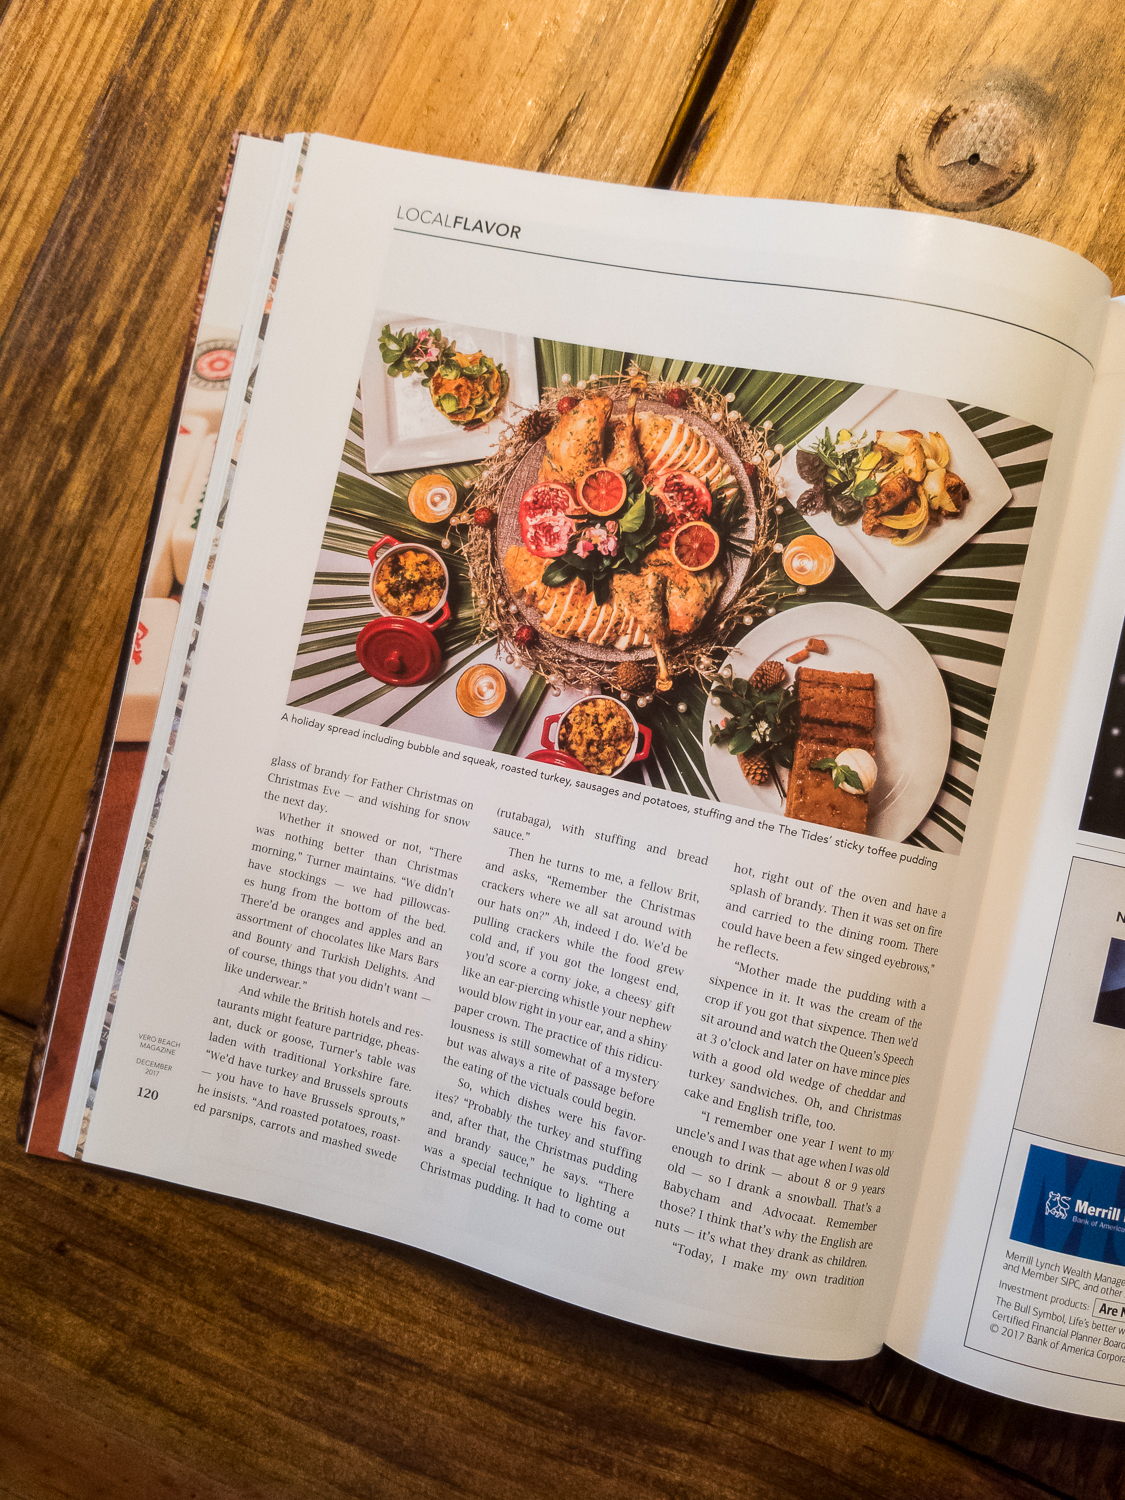 Local Flavor at The Tides - December 2017 Issue